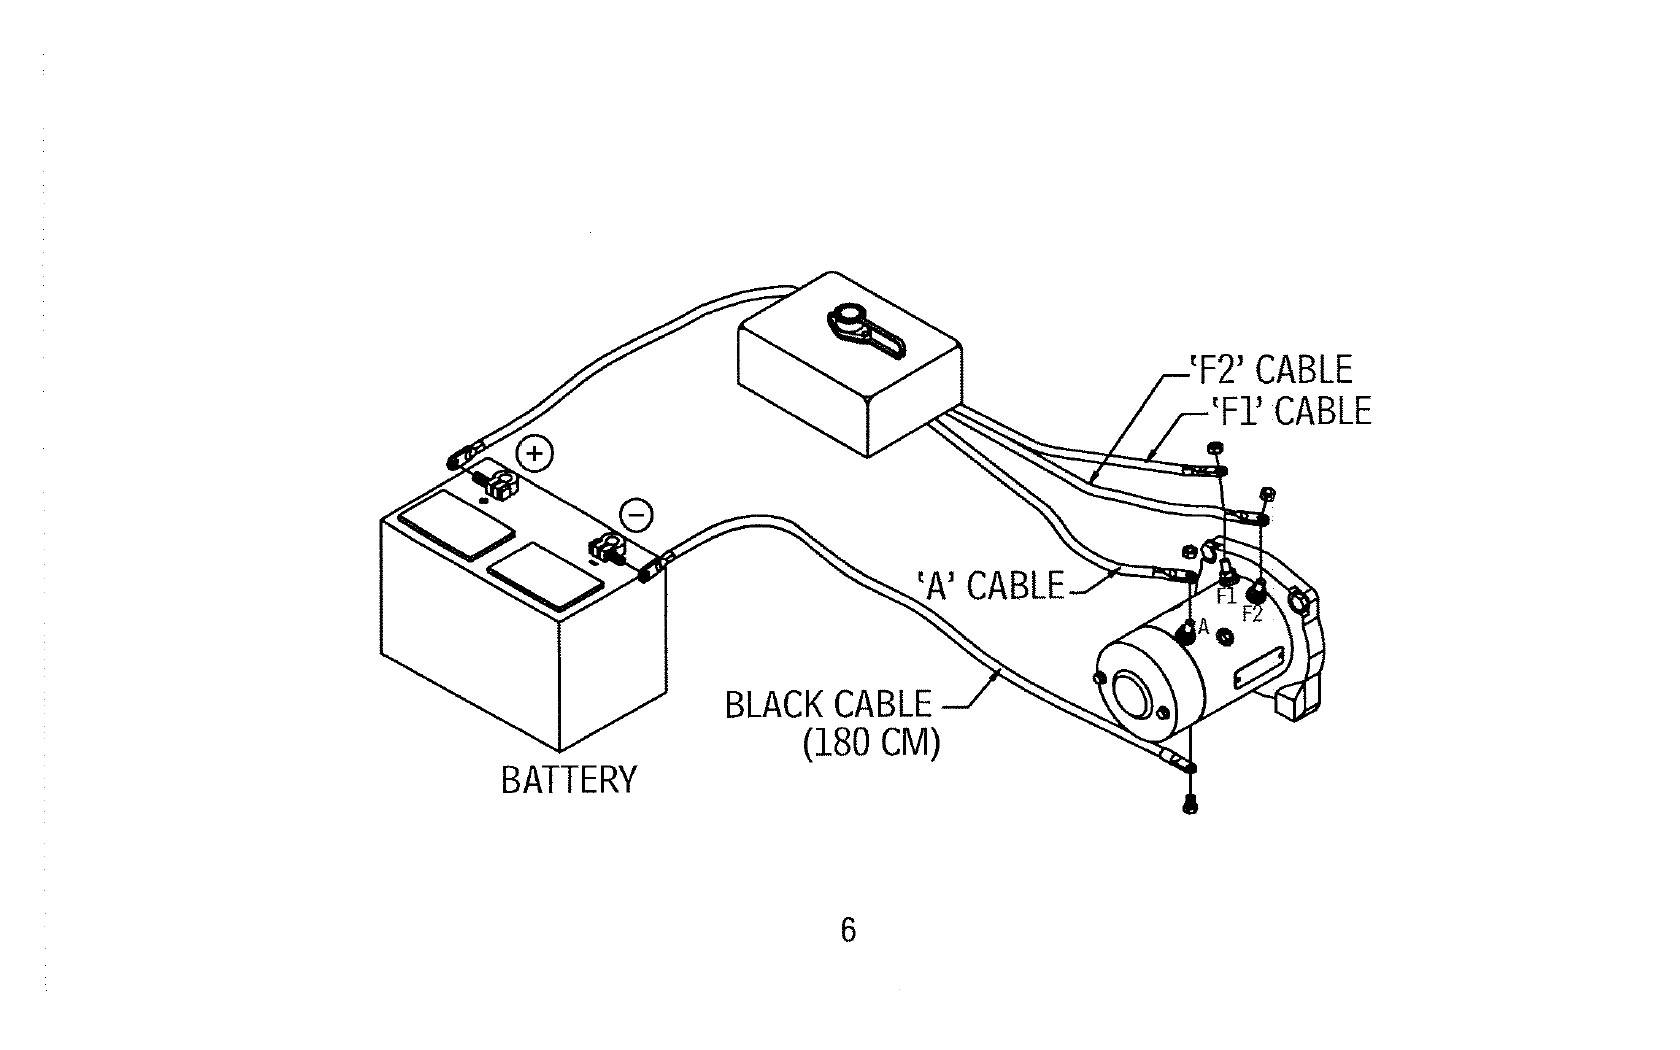 warn_cables moving warn solenoid to engine bay (fjc) yotatech forums warn 2000 winch wiring diagram at soozxer.org